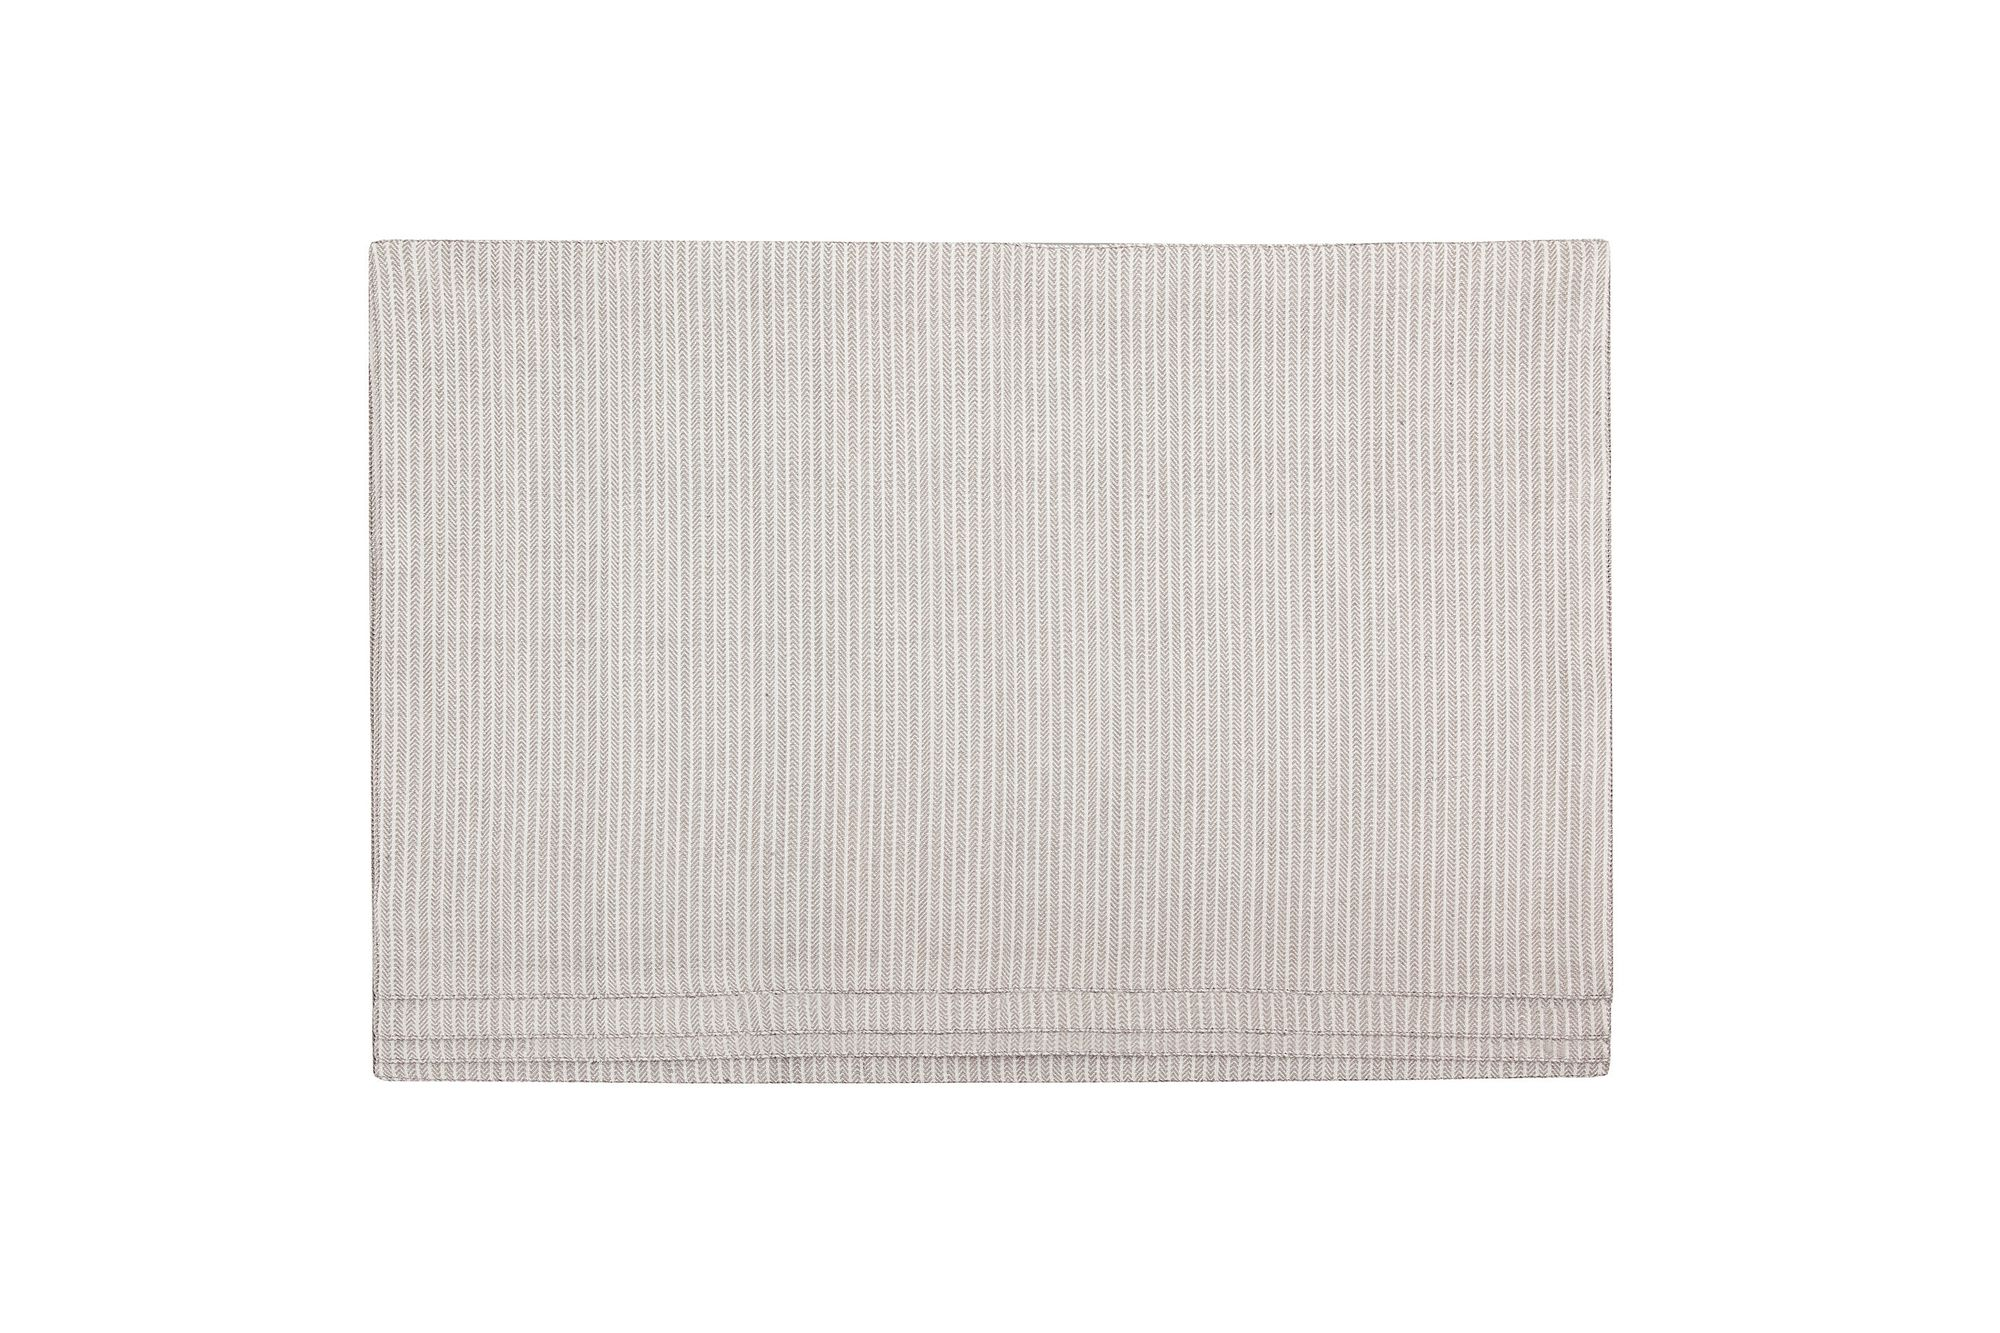 Denby Natural Canvas Placemats - Set of 4 Cotton Placemats 38 x 48cm thumb 1